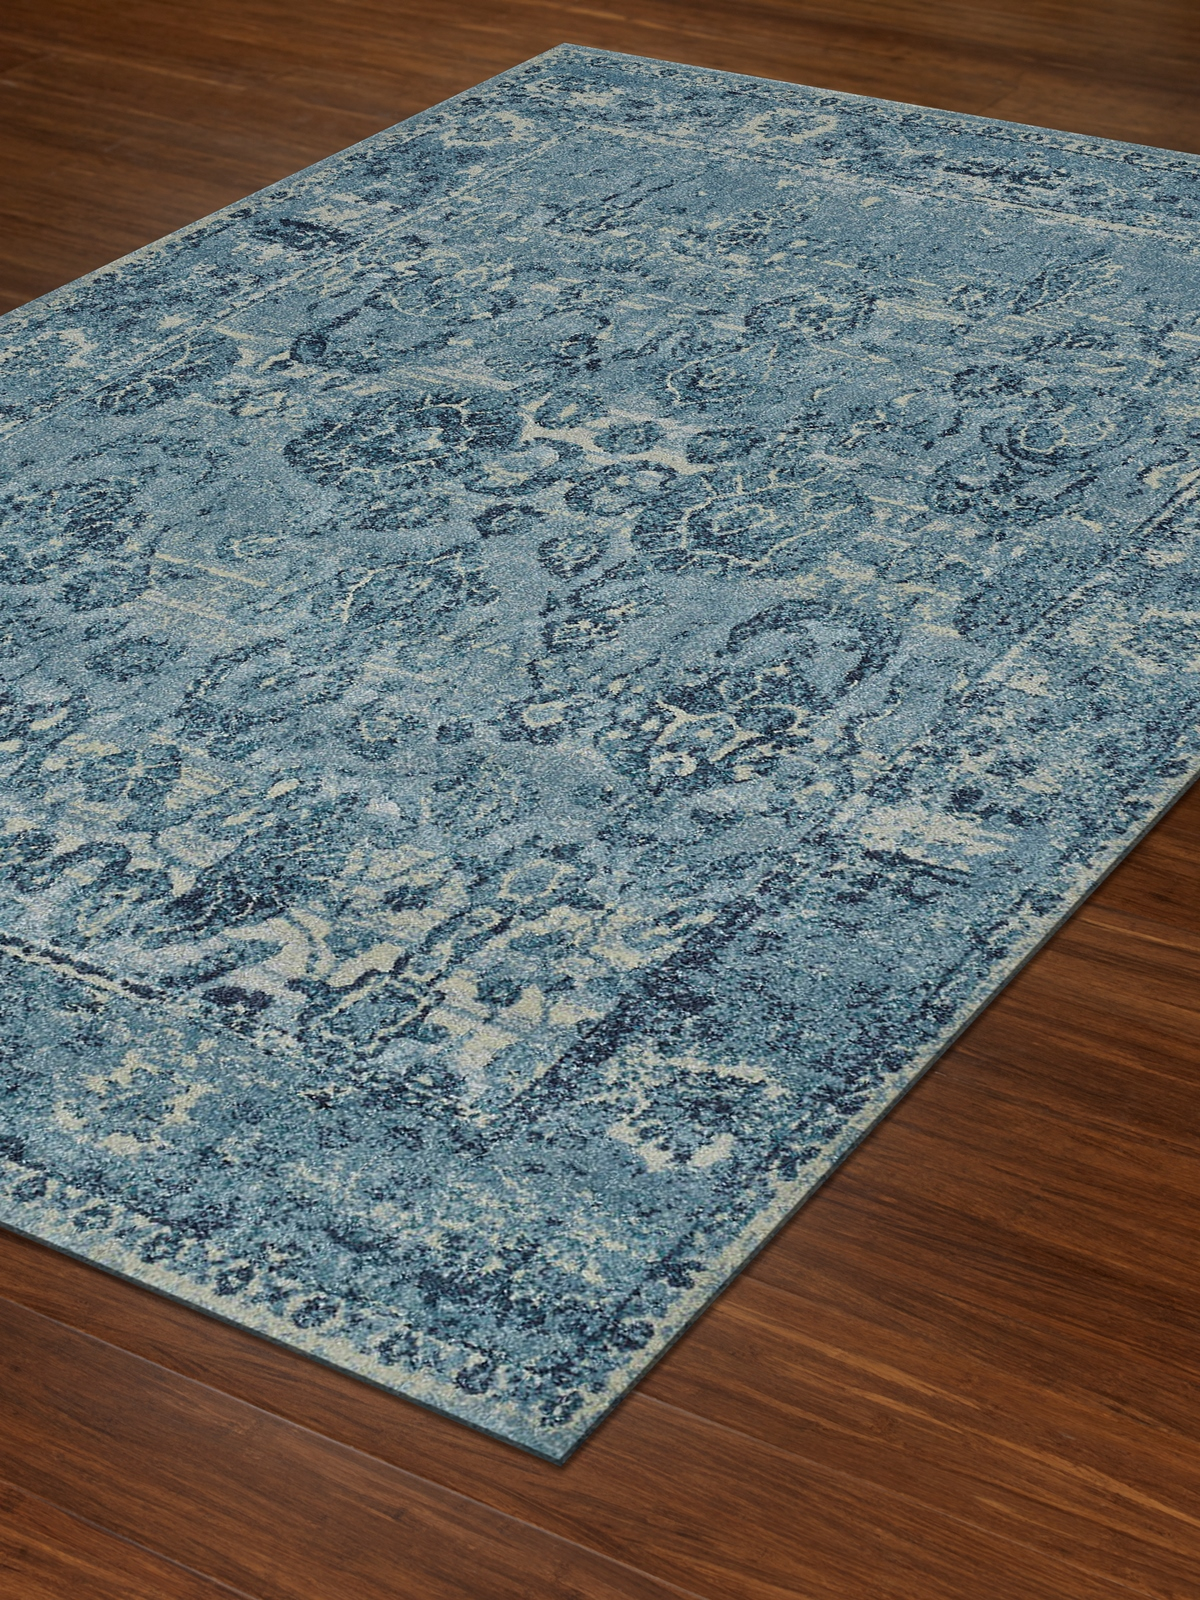 Dalyn Geneva Gv702 Sky Blue Area Rug Free Shipping